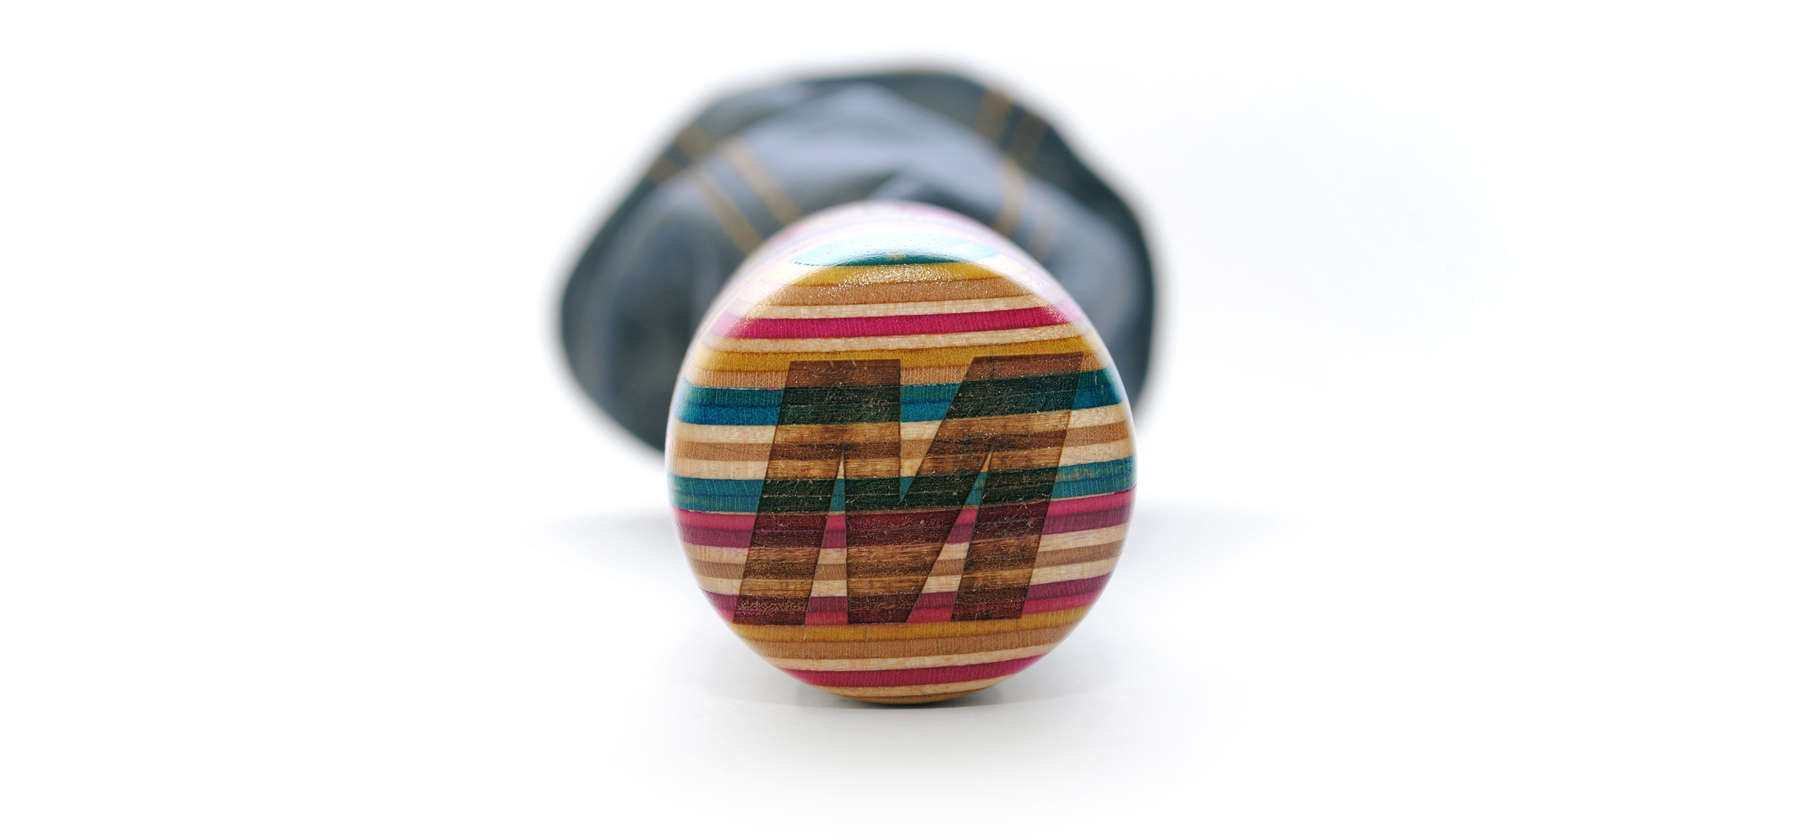 Madetoscrape shift knob